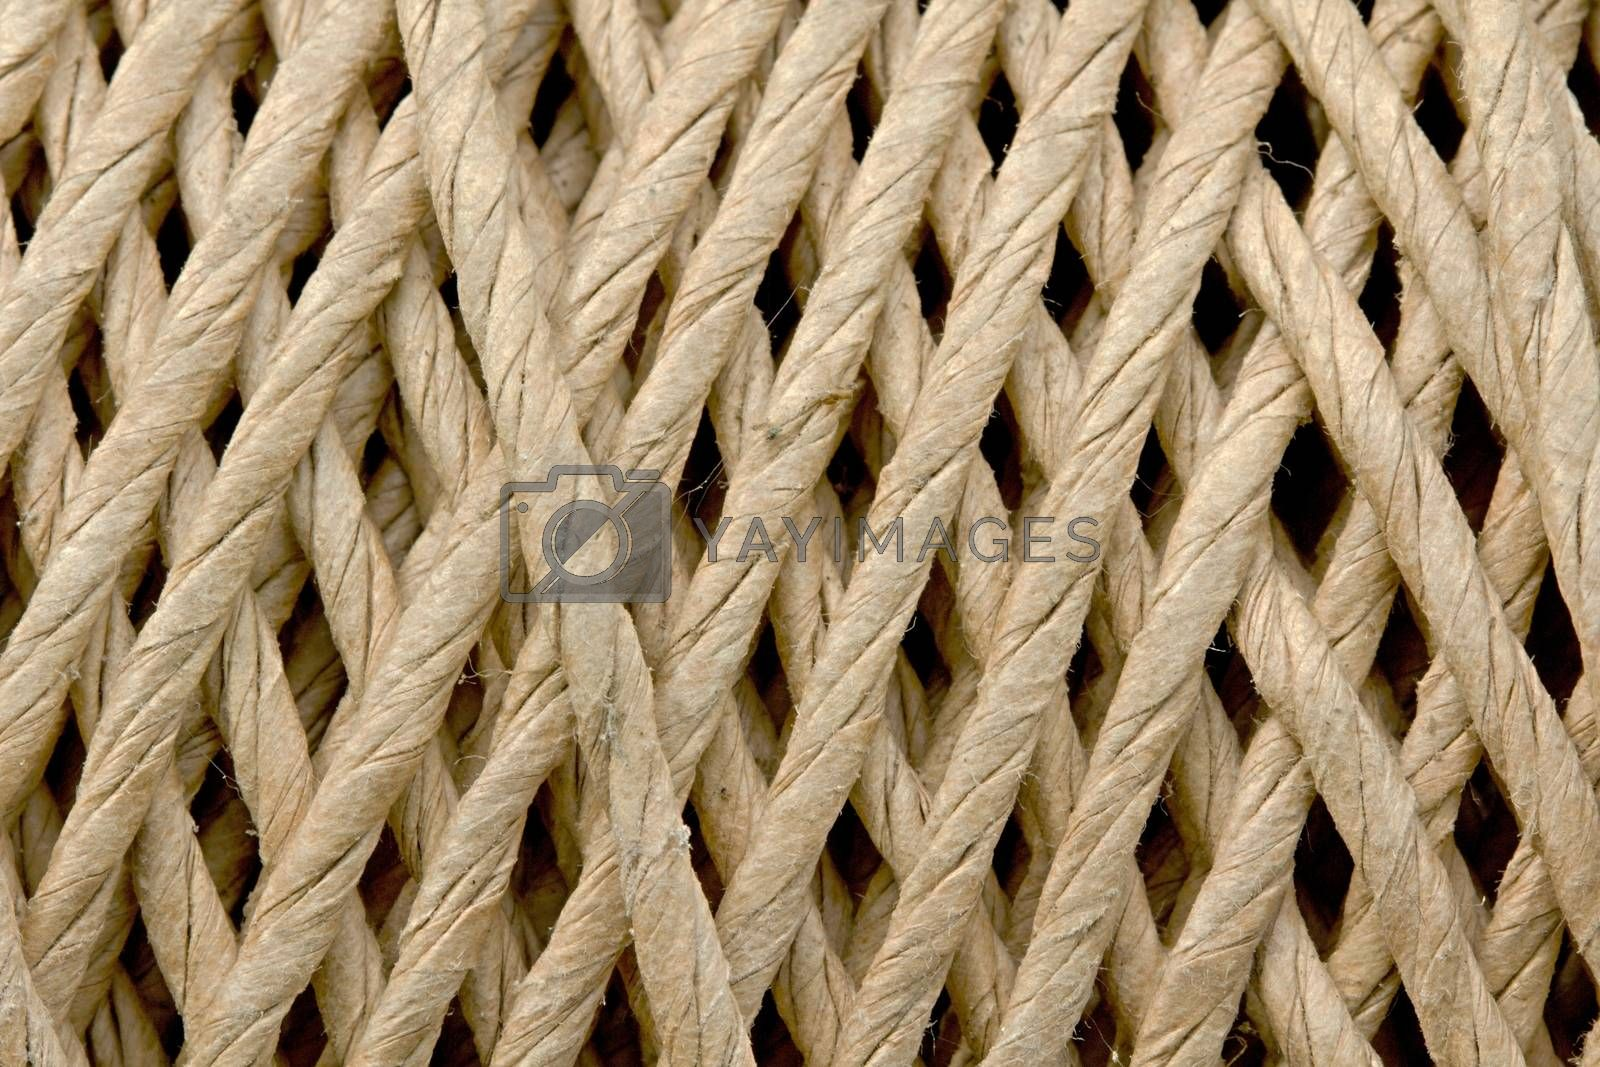 Photo shows detail of a nature rope.